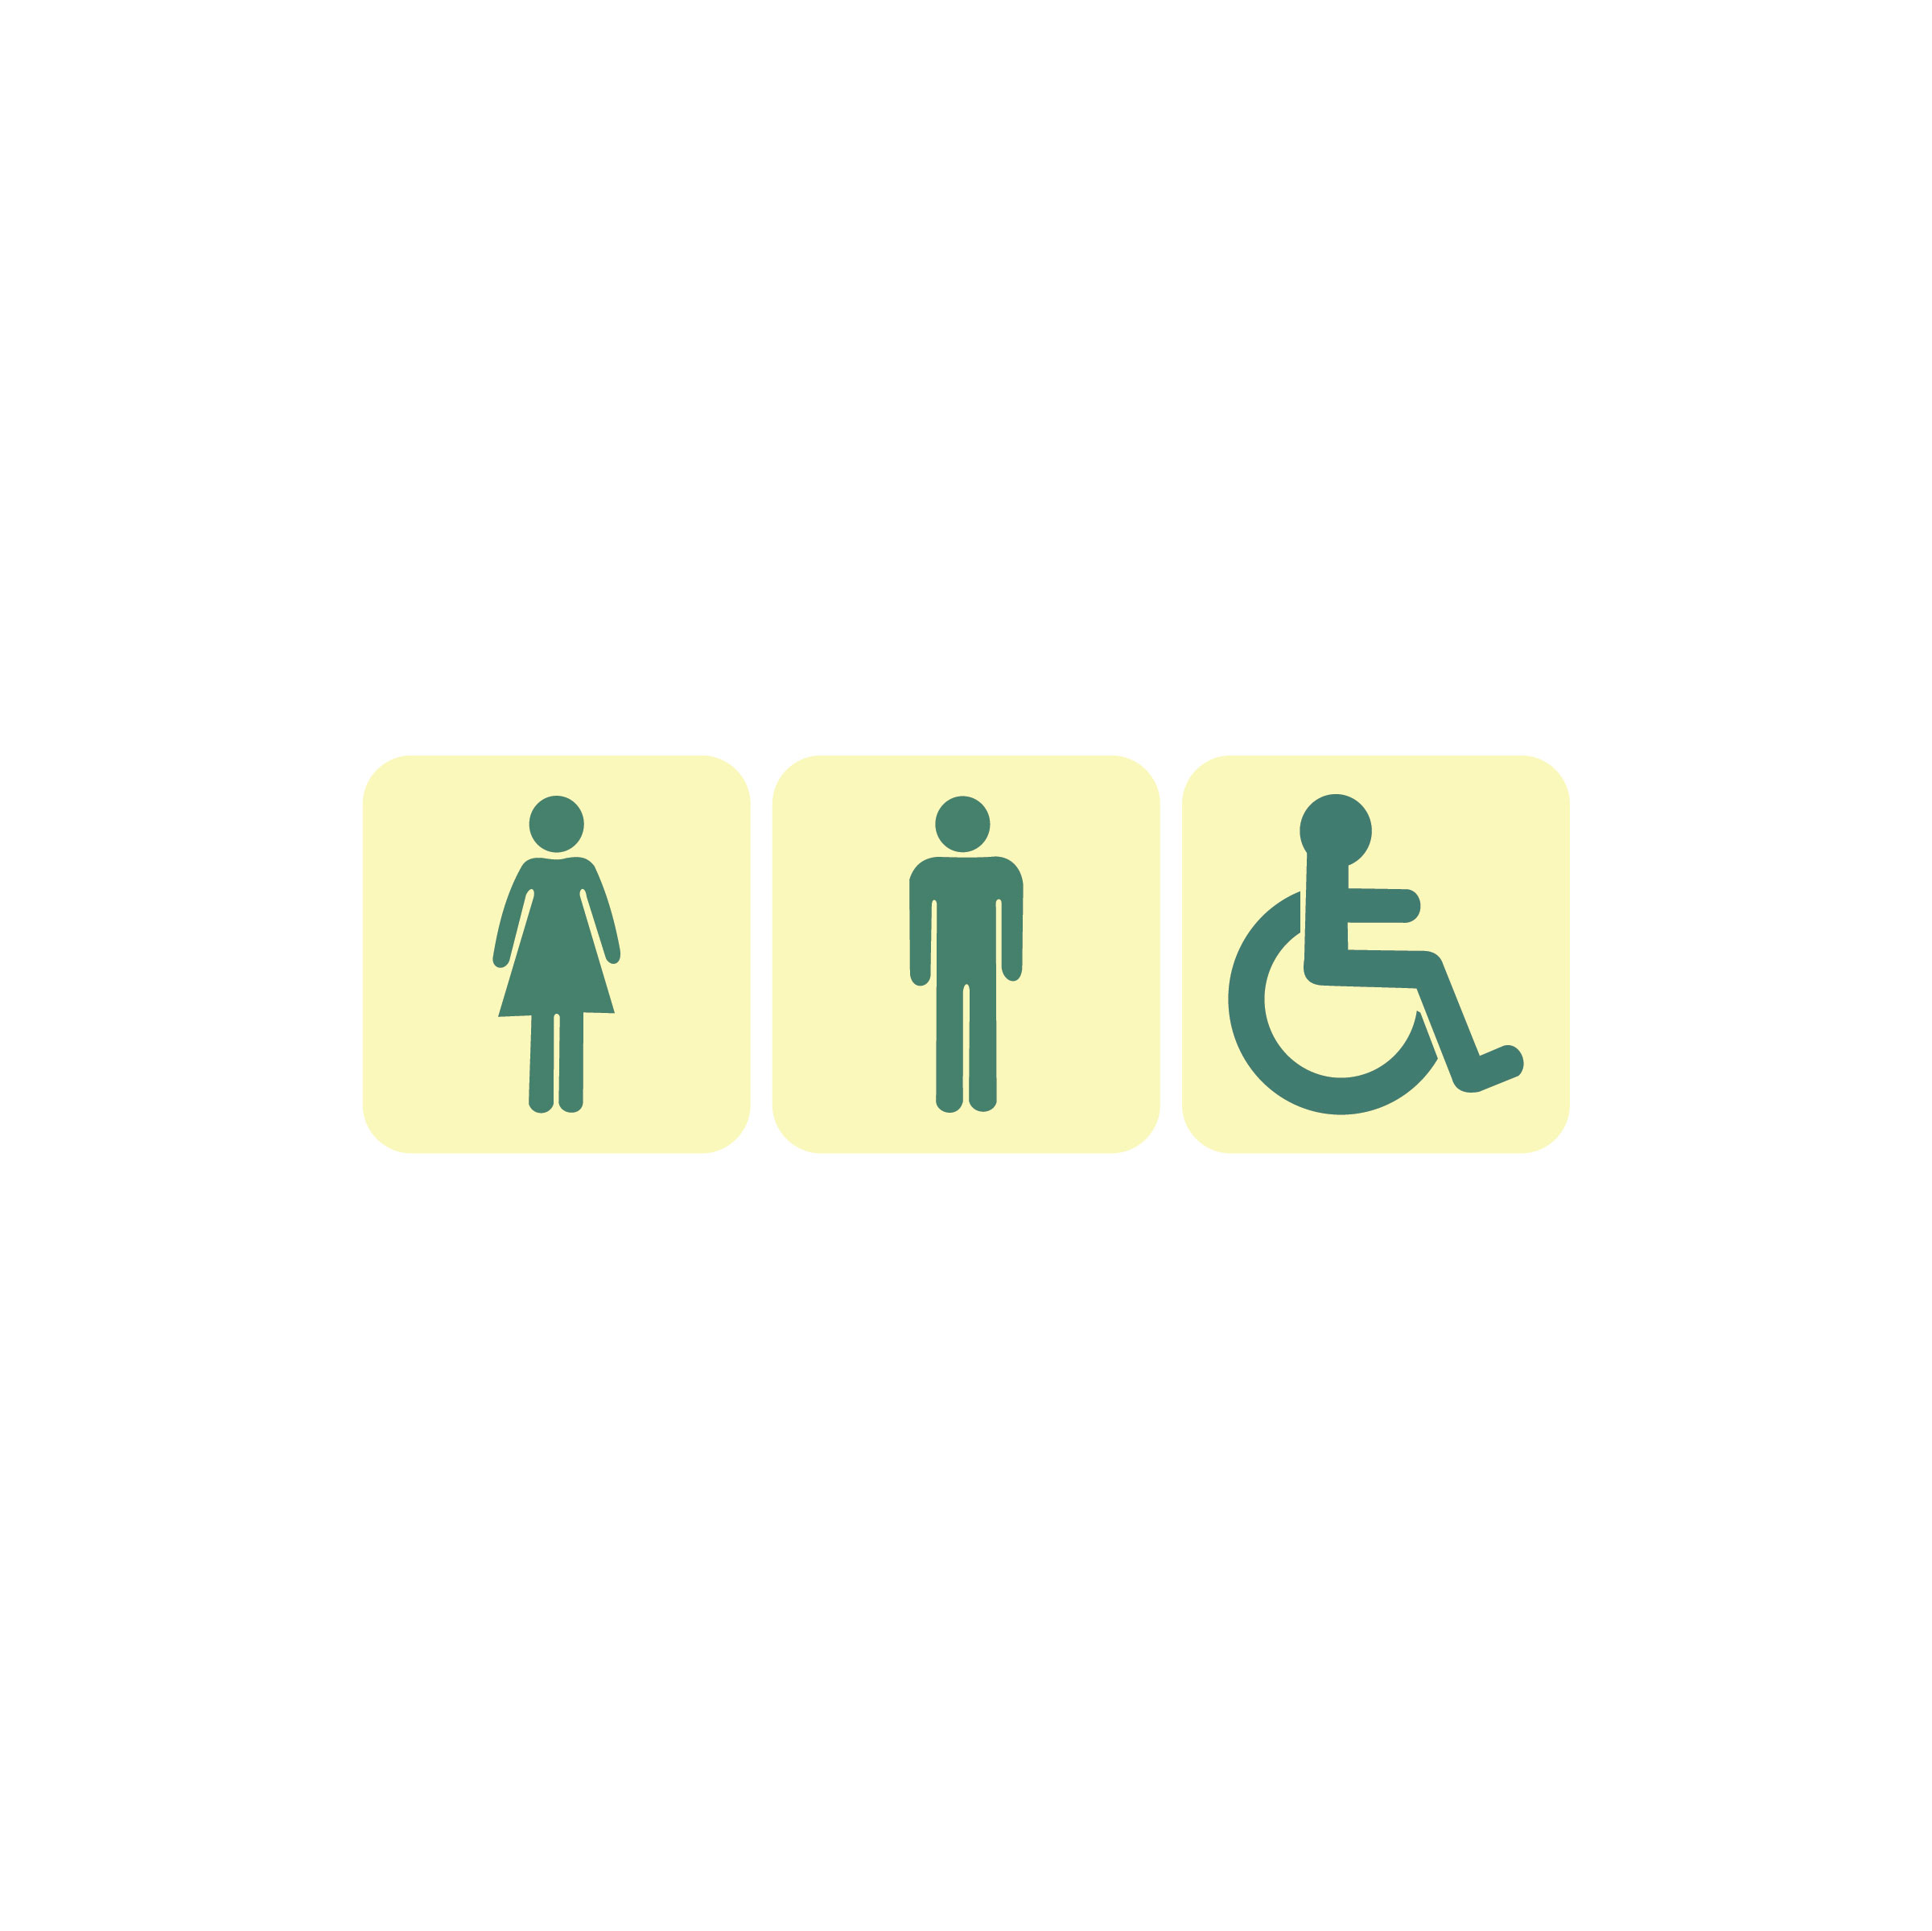 Public & Handicapped Restrooms - Set of 3 Image